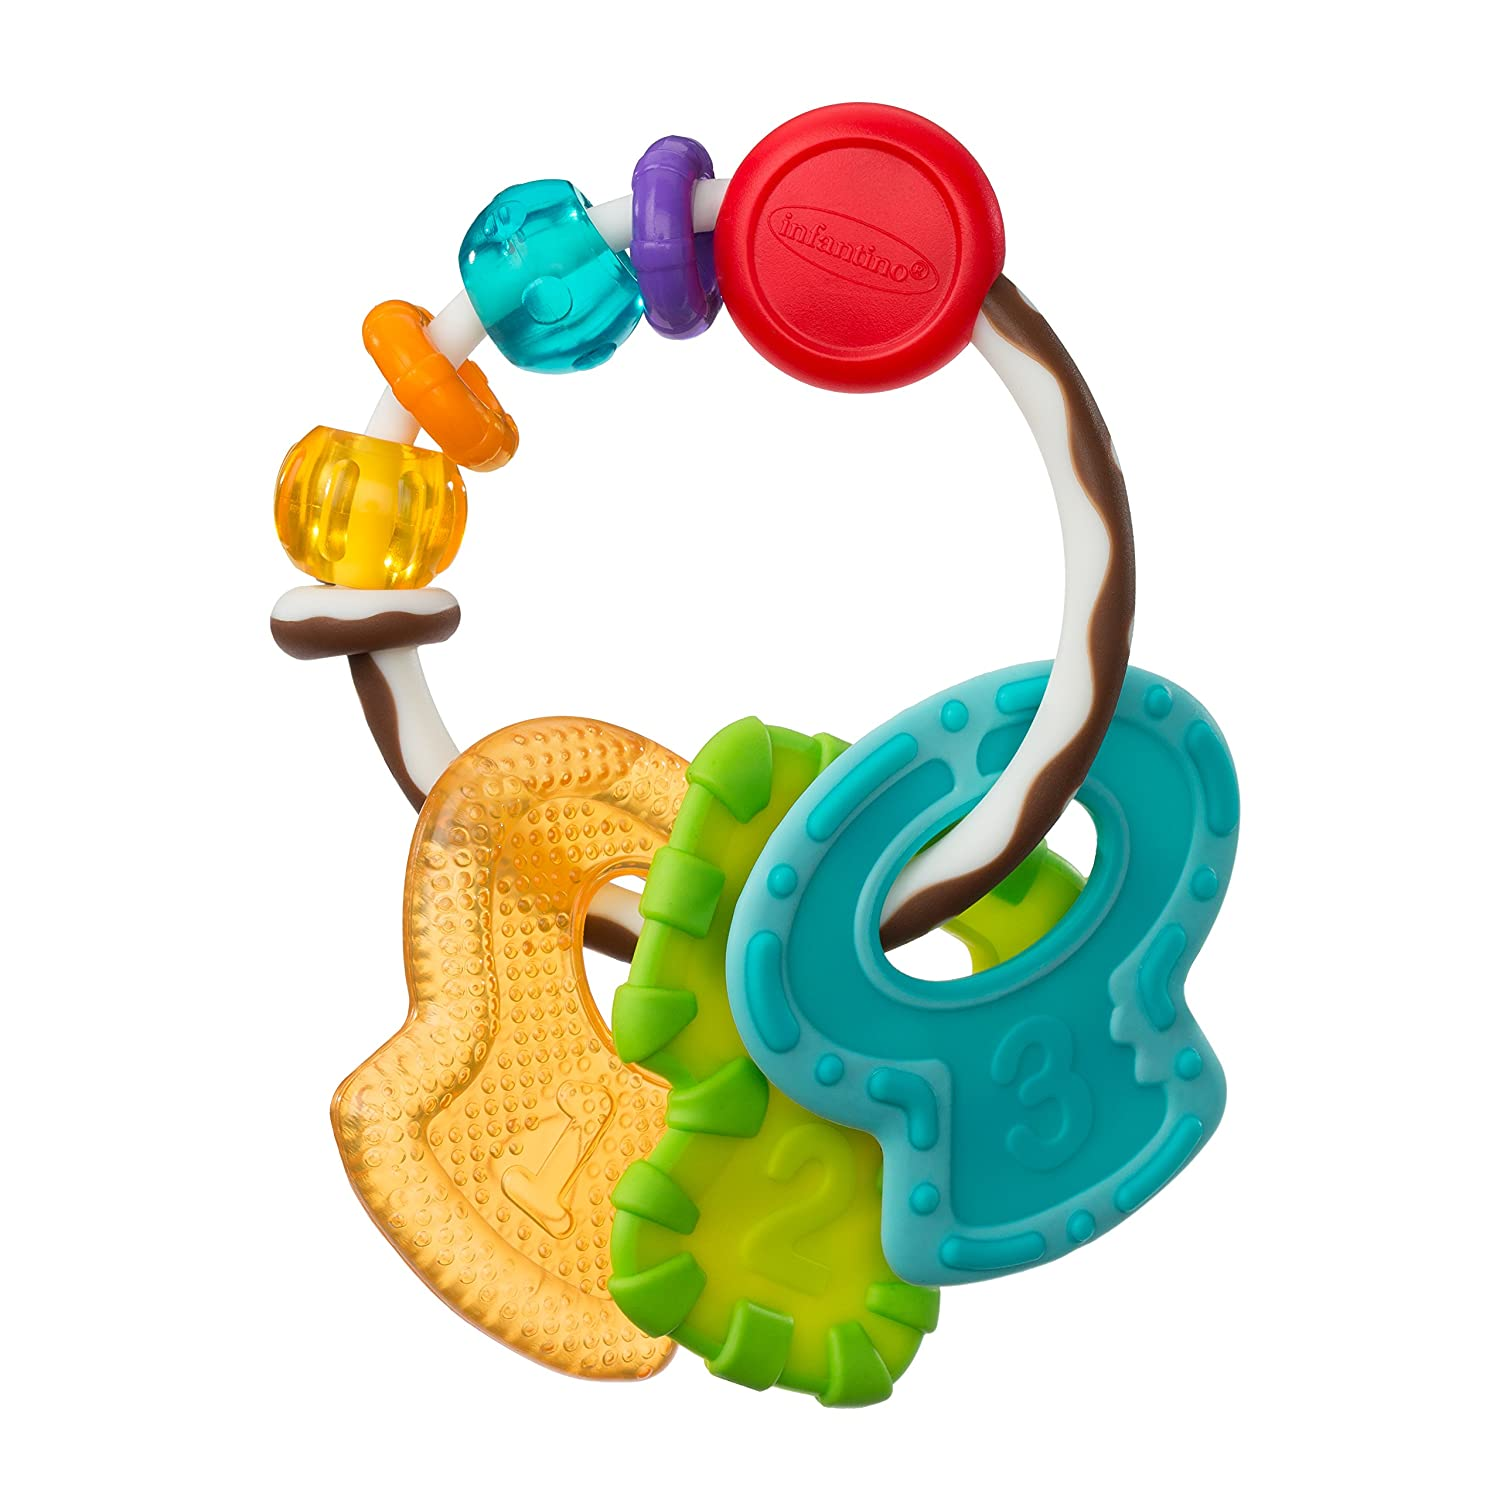 Infantino Bkids Slide and Chew Teether Keys